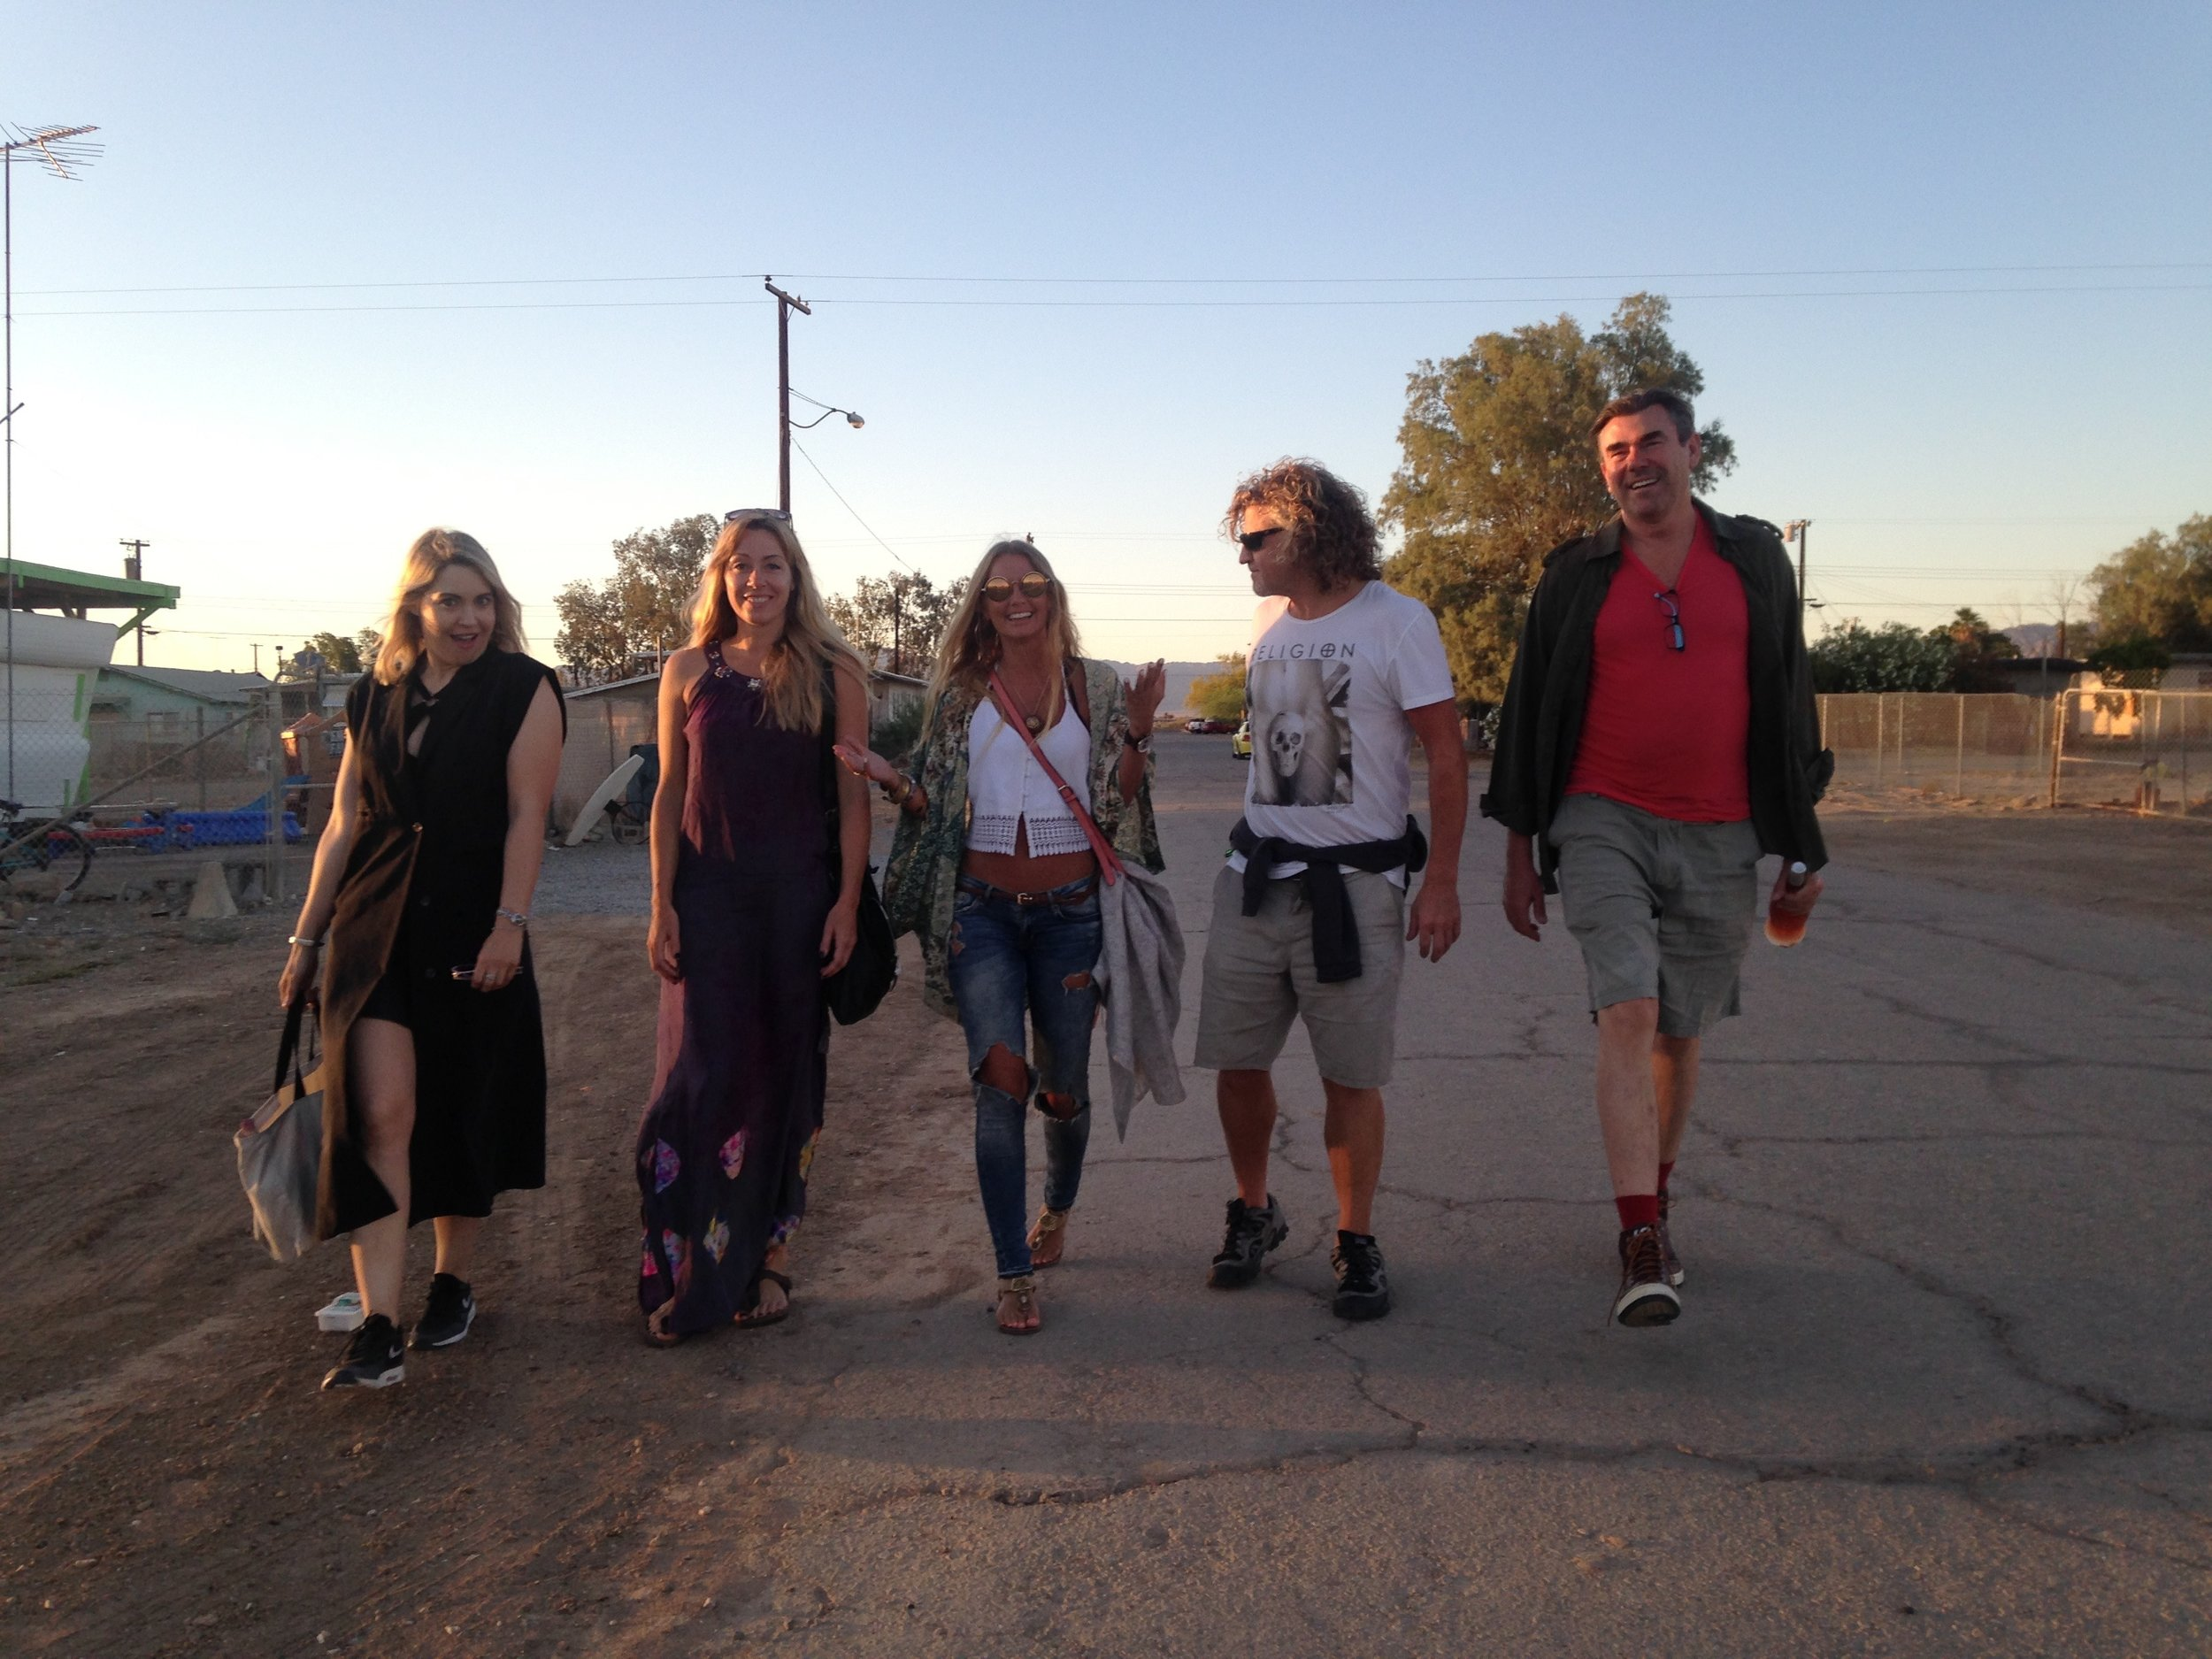 On our way to the Bombay Beach Party